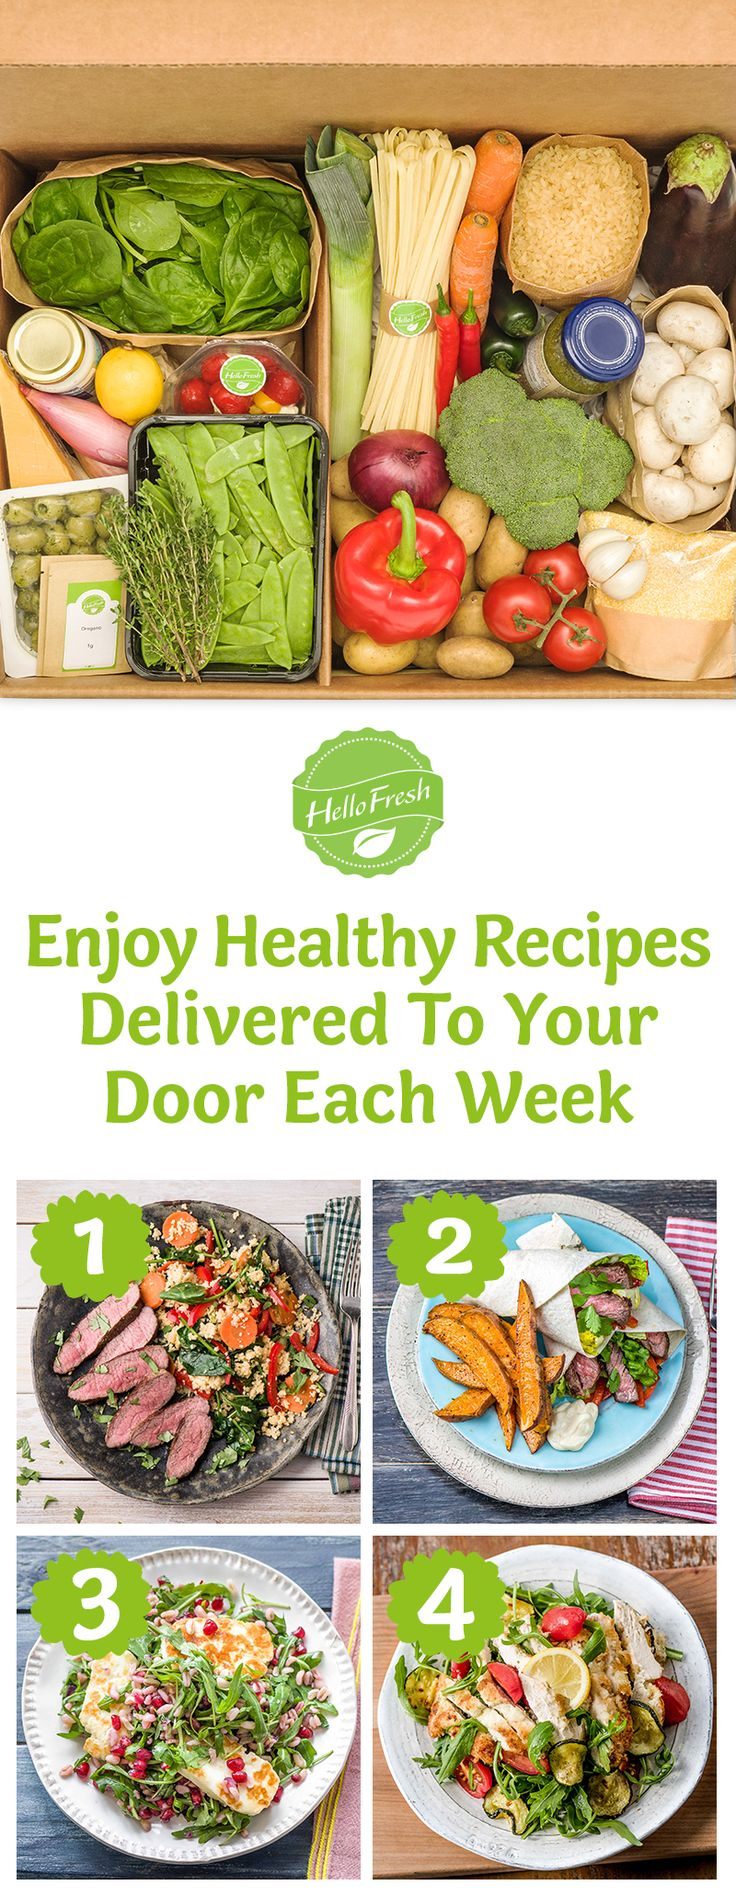 1st step to eating and feeling healthier is as easy as your 1st HelloFresh Box! ➜ Use code HELLOPIN35 at checkout to save $35 on your 1st box! We deliver delicious recipes with all the pre-measured ingredients to your door each week. Ends 30/6/16.